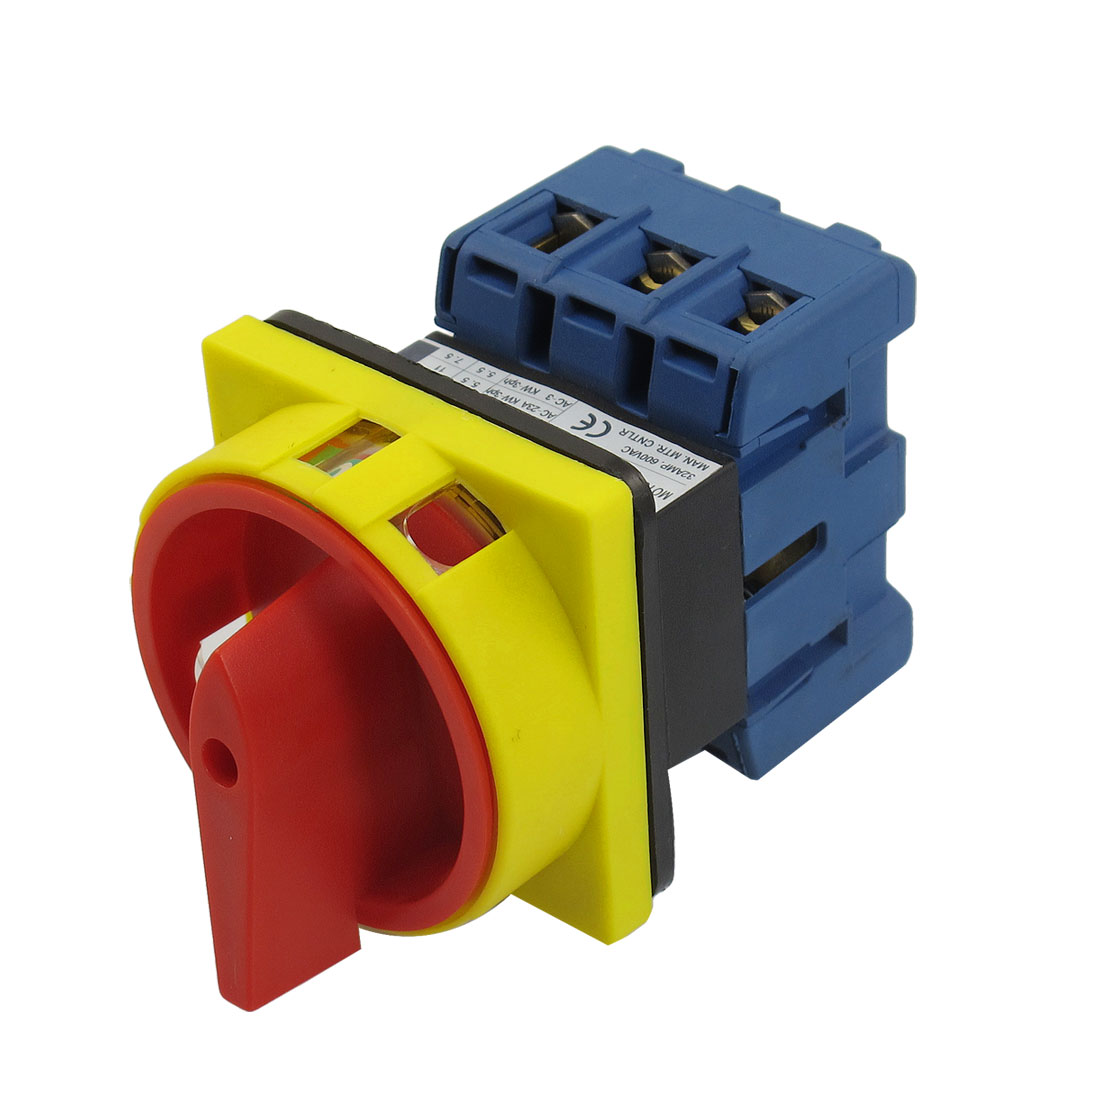 UXCELL Ui 600V Ith 63A On/Off Position 3 Phase Rotary Cam Changeover Switch<br><br>Aliexpress